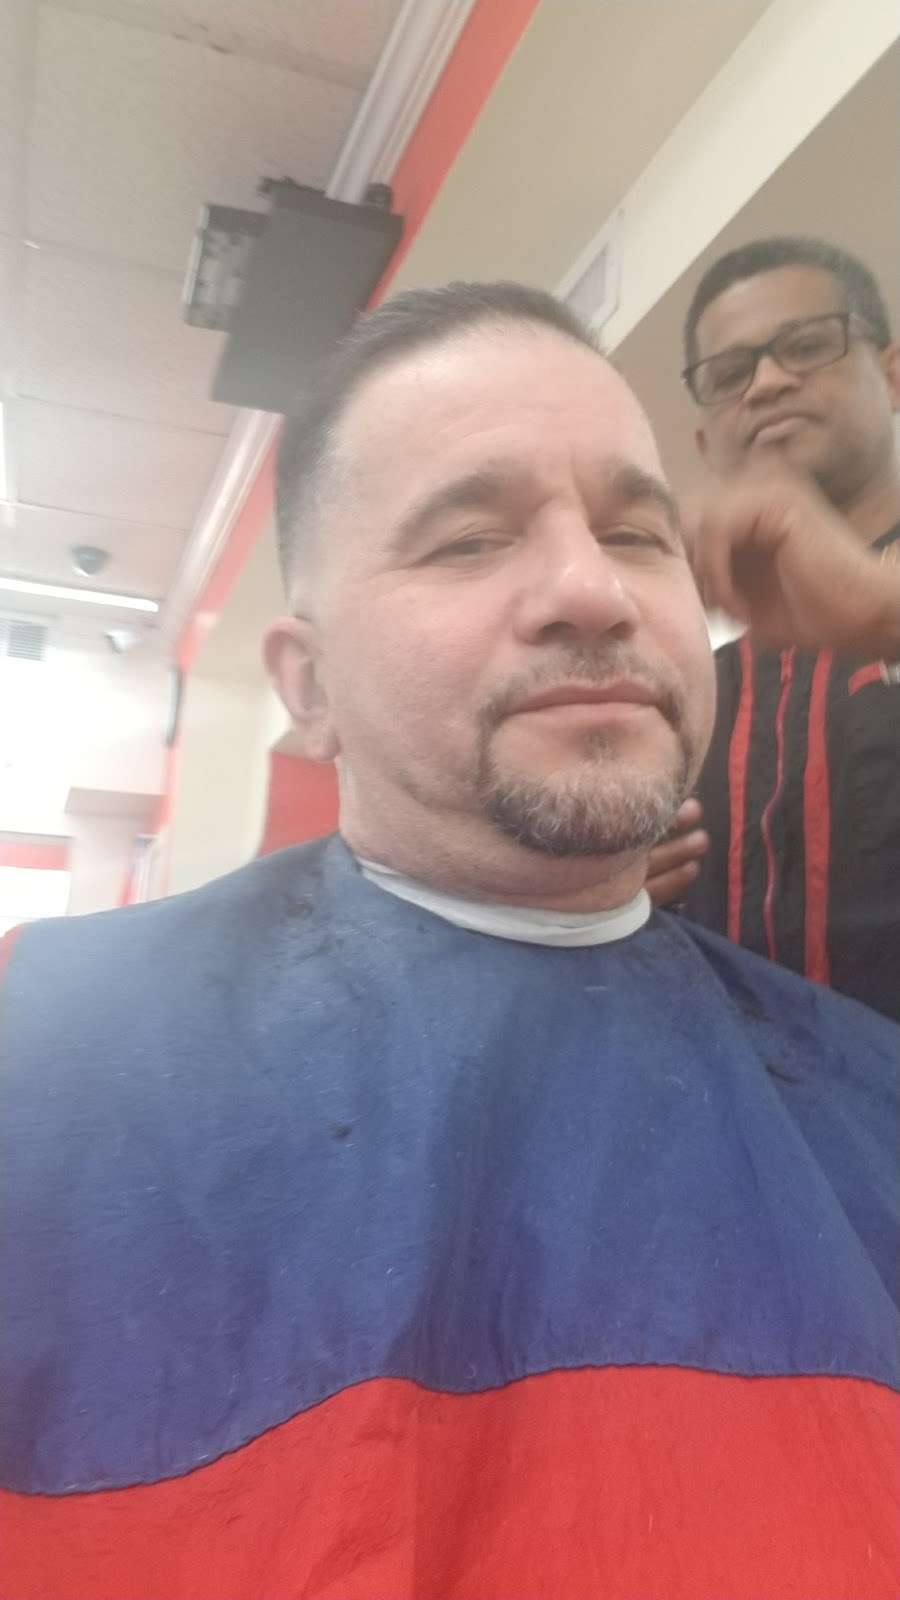 Dominican Barber Shop - hair care    Photo 2 of 2   Address: 580 Richmond Rd, Staten Island, NY 10304, USA   Phone: (718) 556-5086